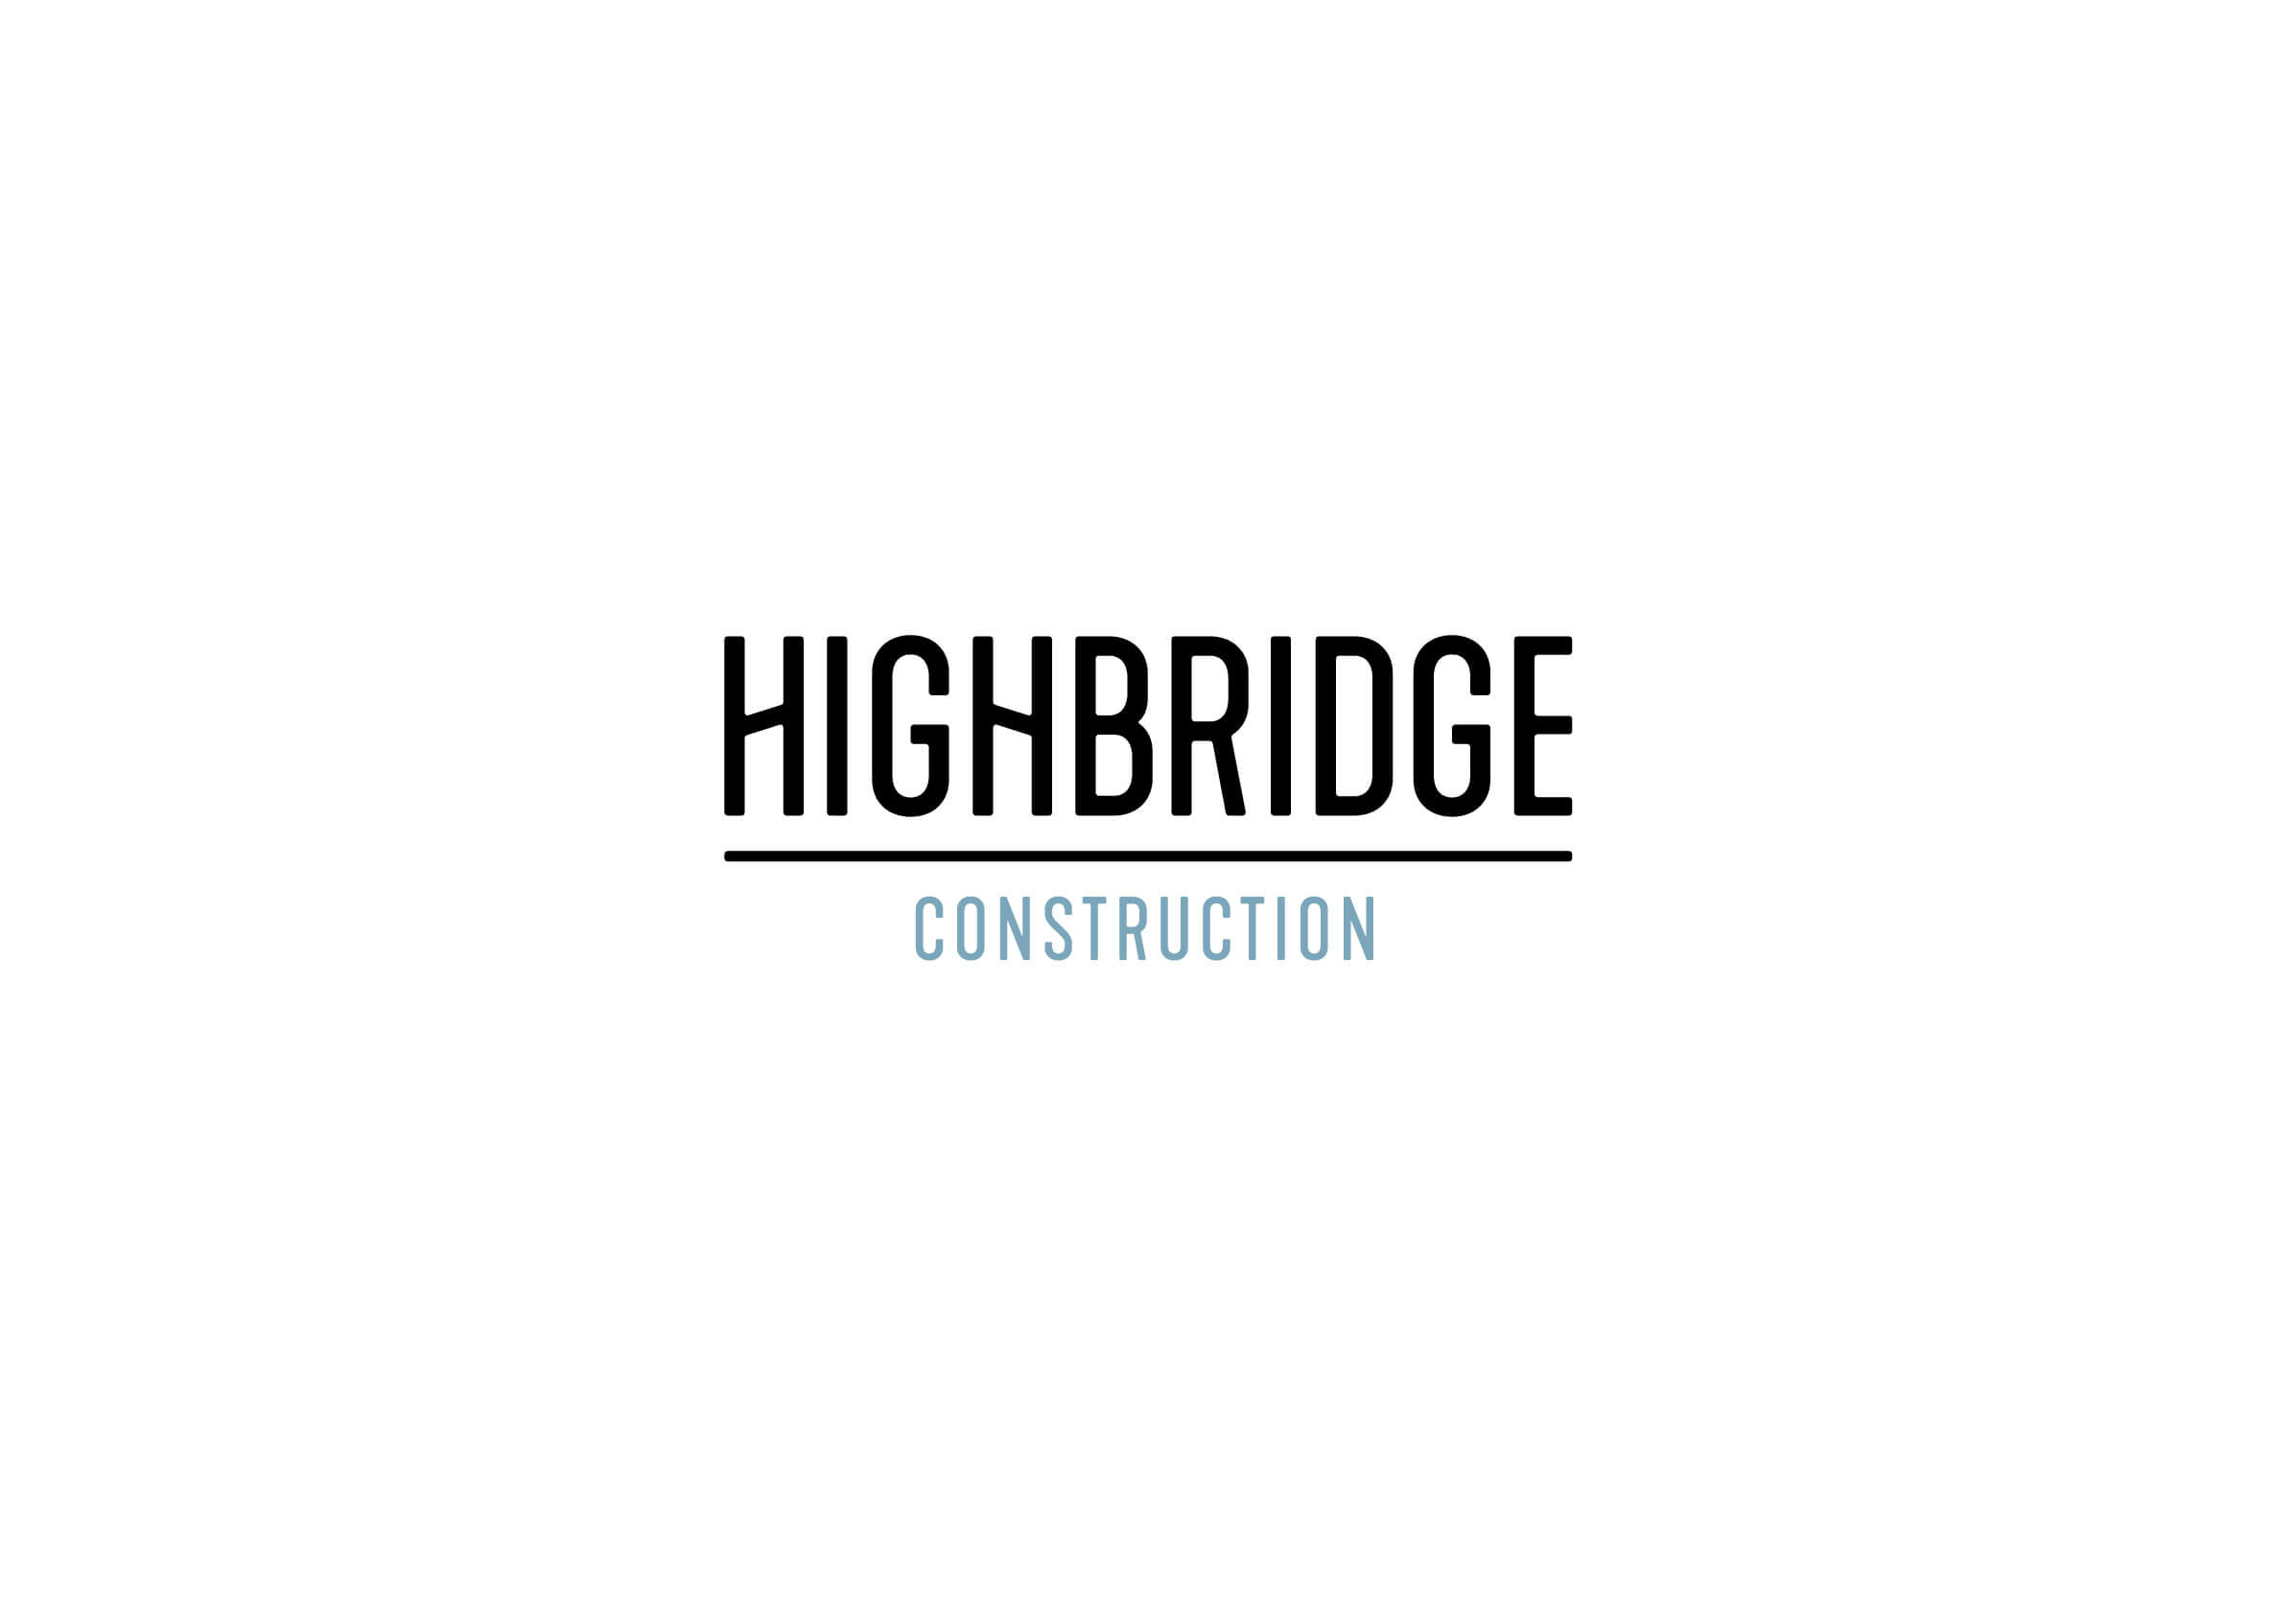 Highbridge Construction logo for Ottawa-based general contractor by graphic designer idApostle